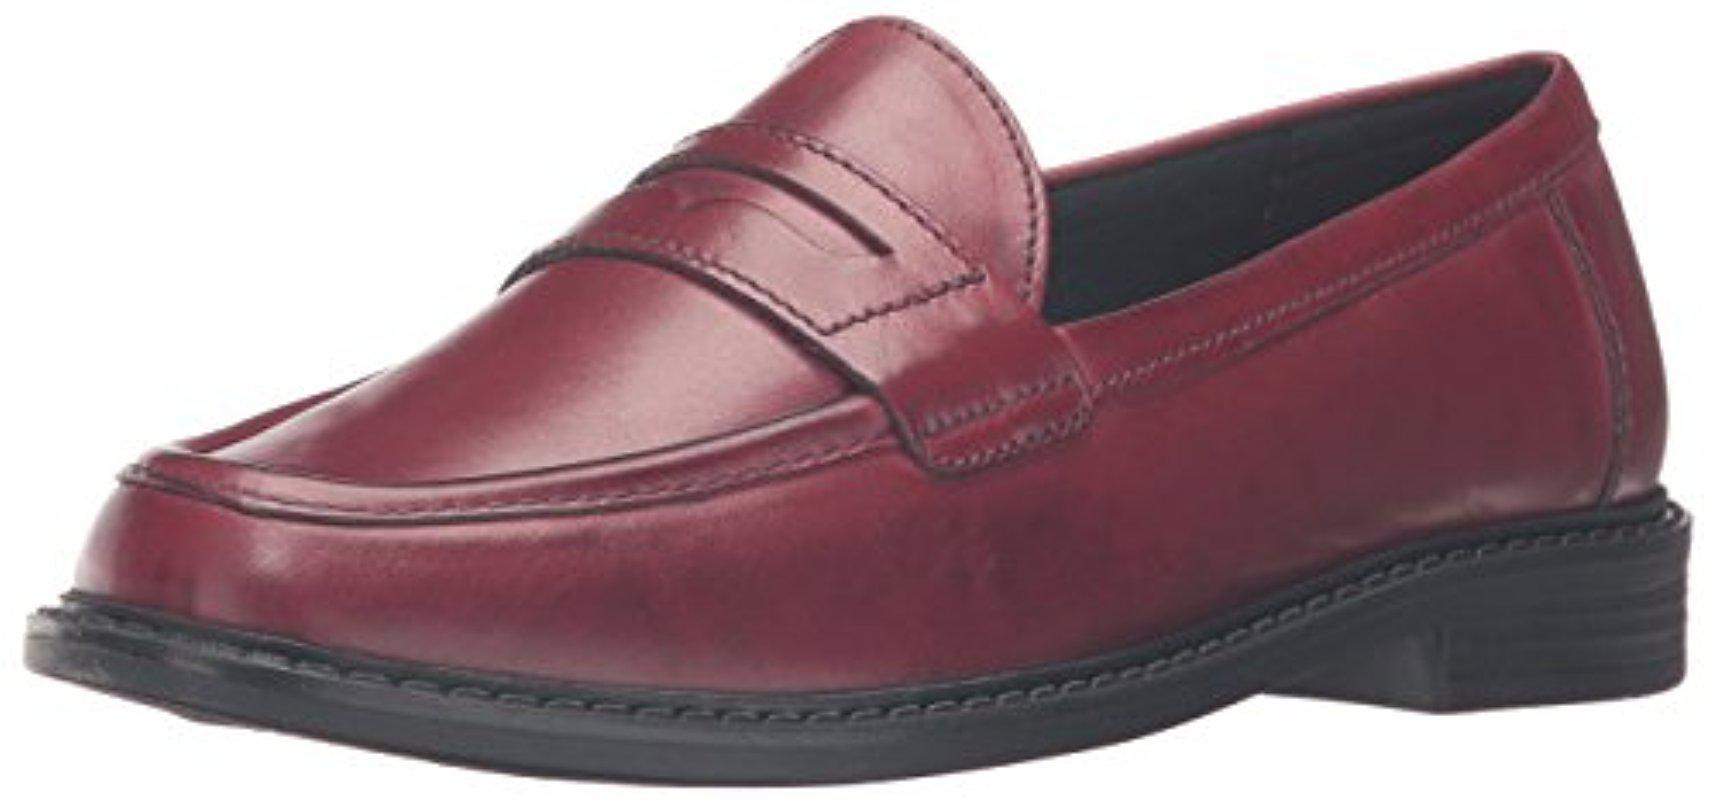 501d95bcf13 Lyst - Cole Haan Pinch Campus Penny Loafer for Men